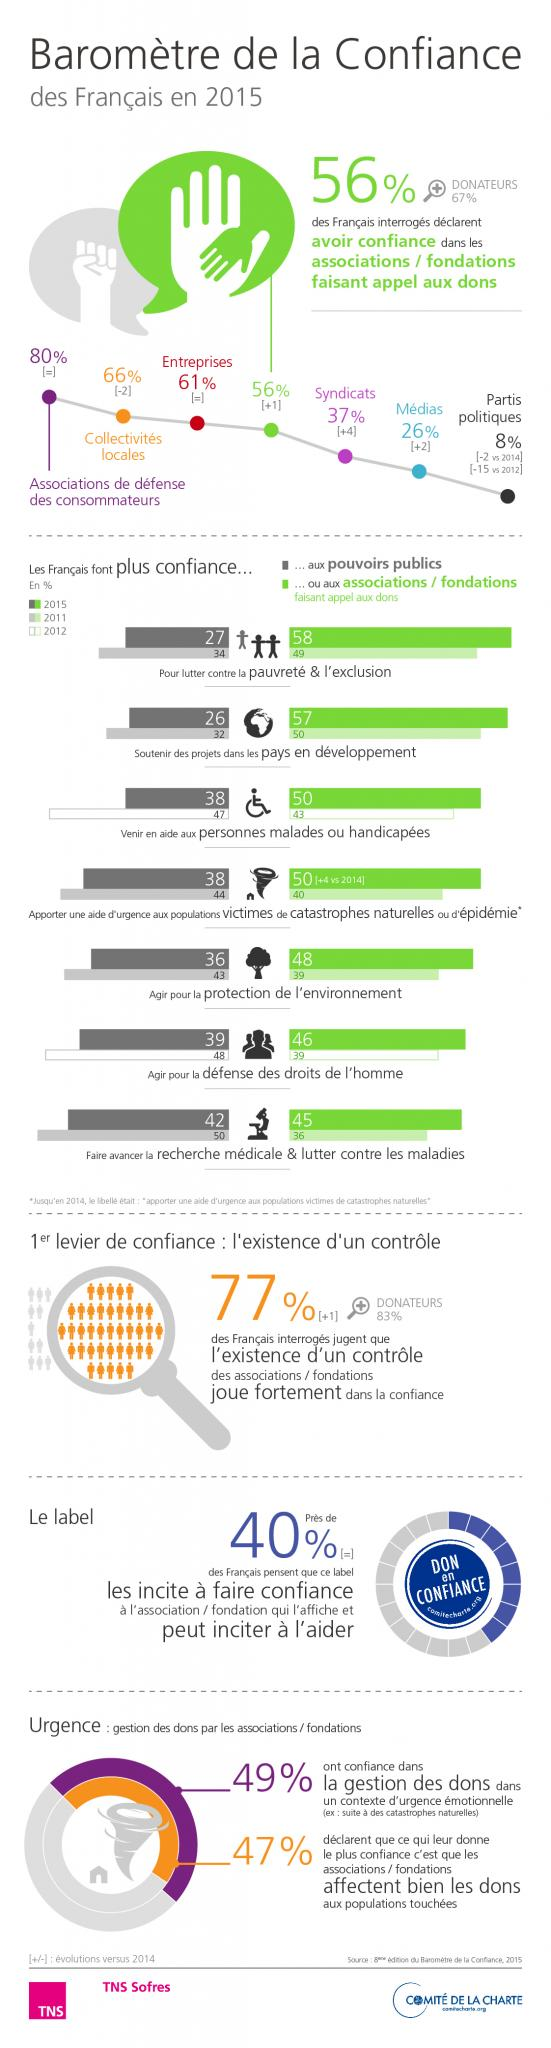 2015 Baro Confiance - Infographie